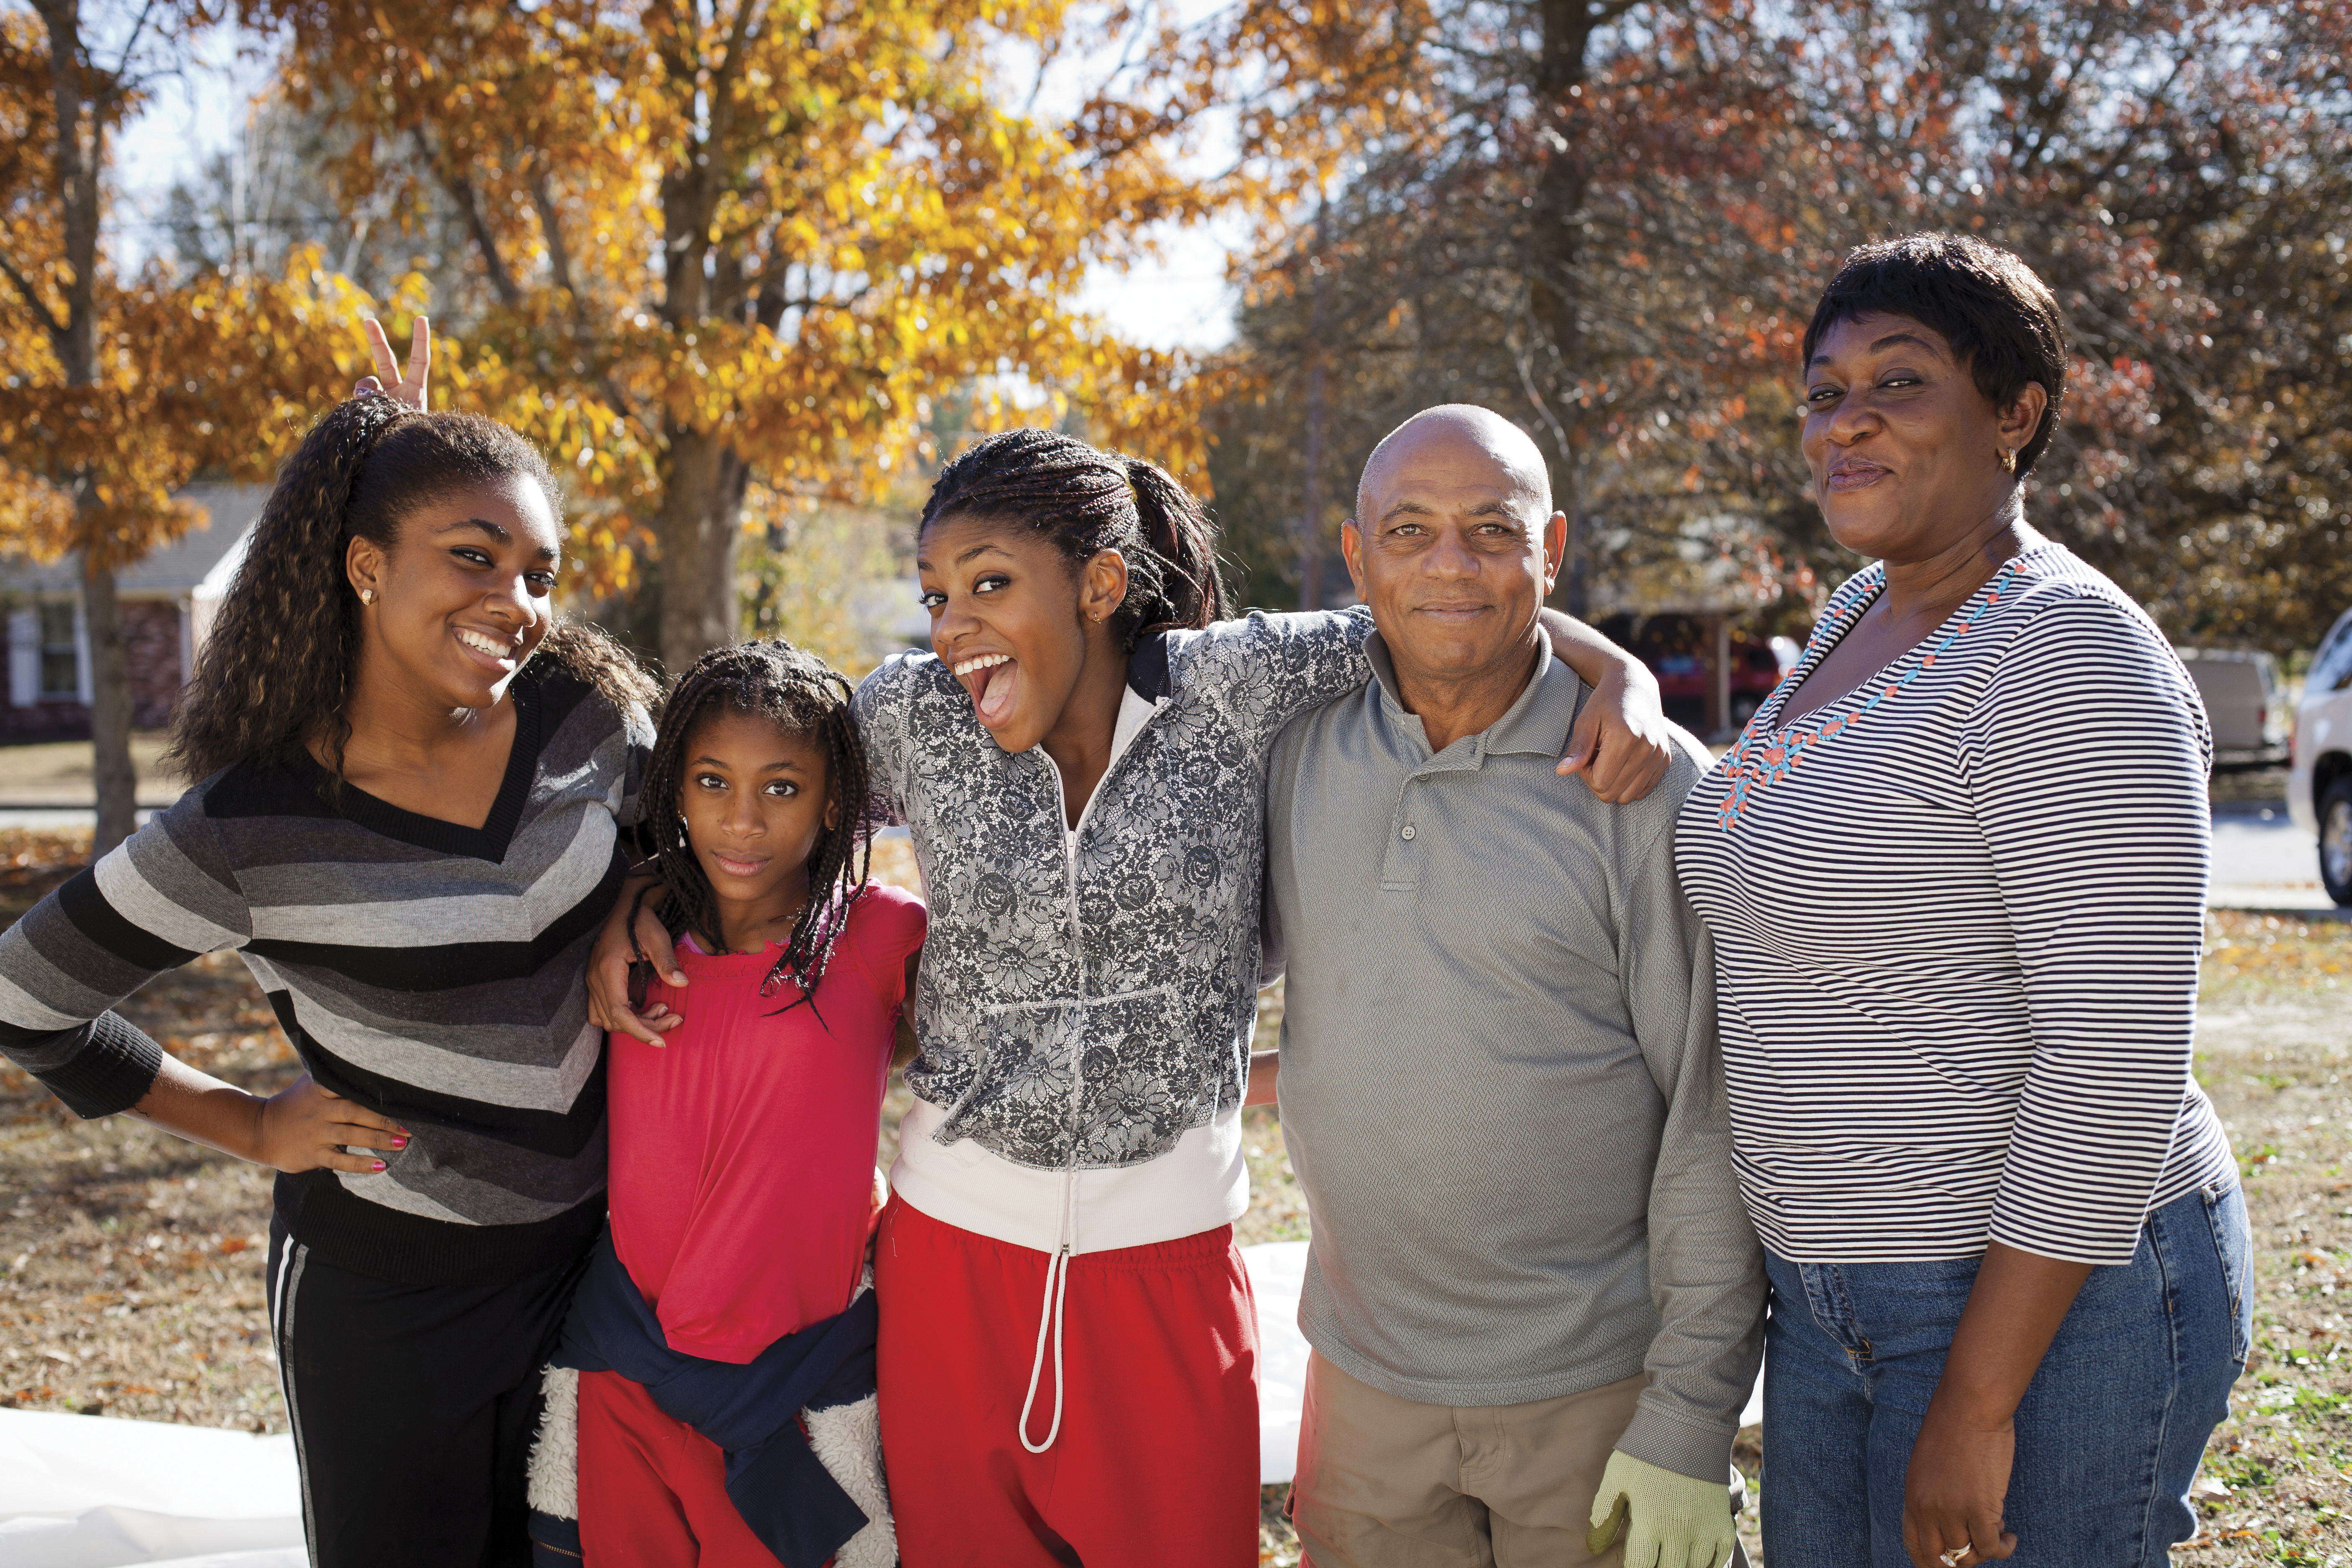 A mother, father, and three daughters.